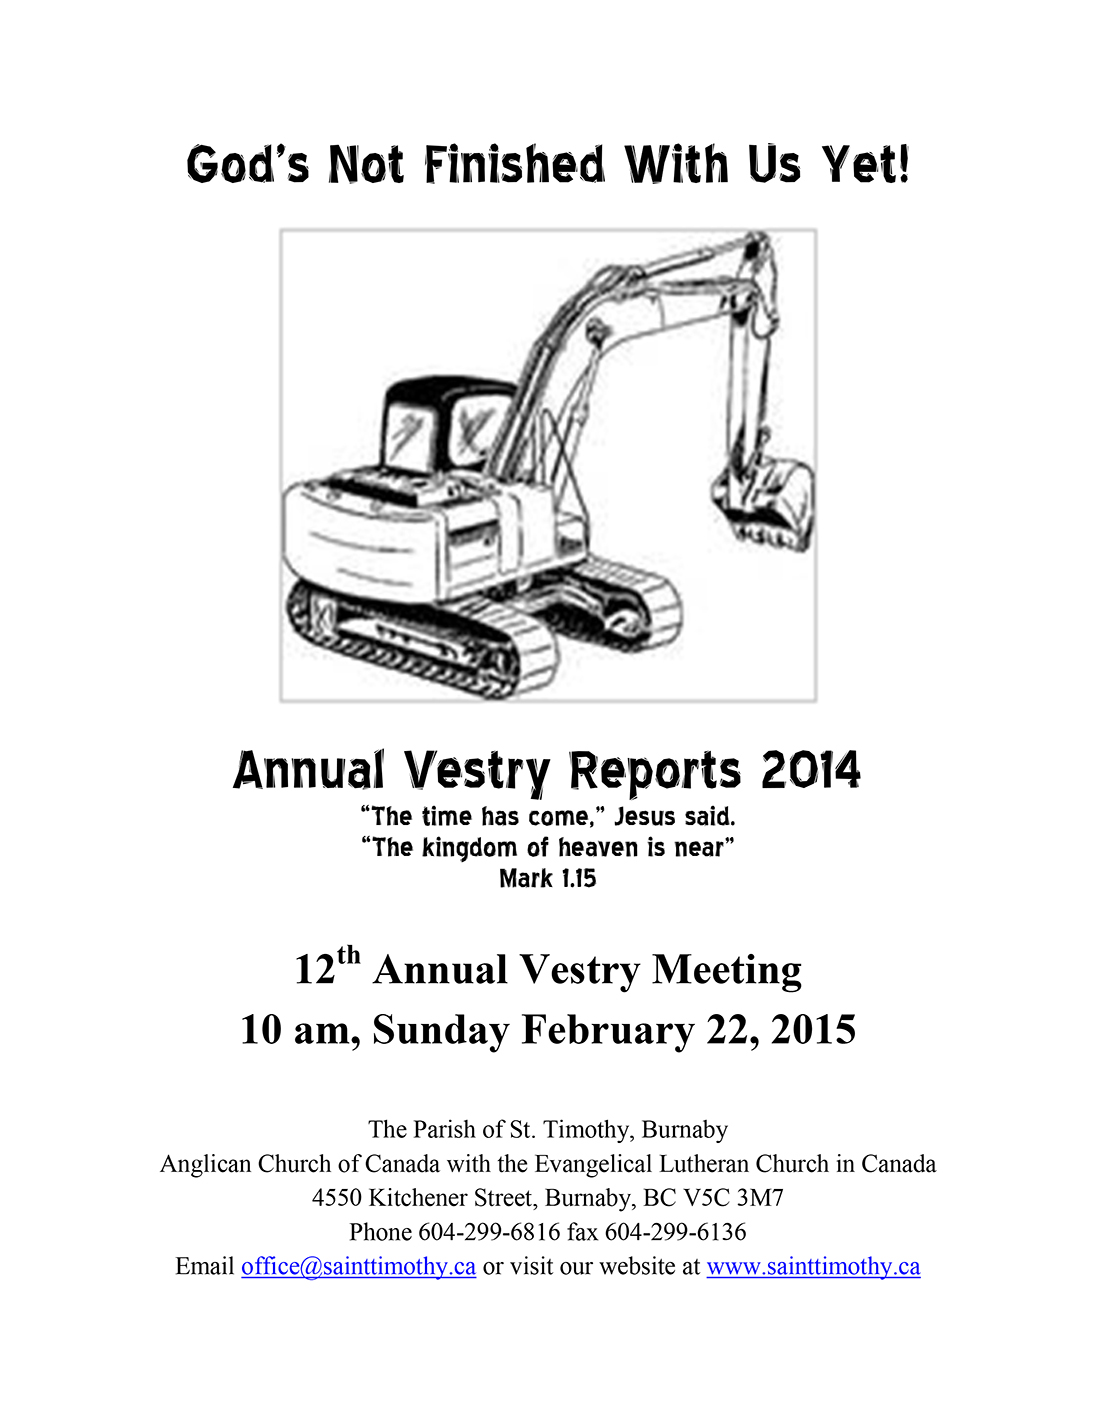 Vestry Reports for 2014